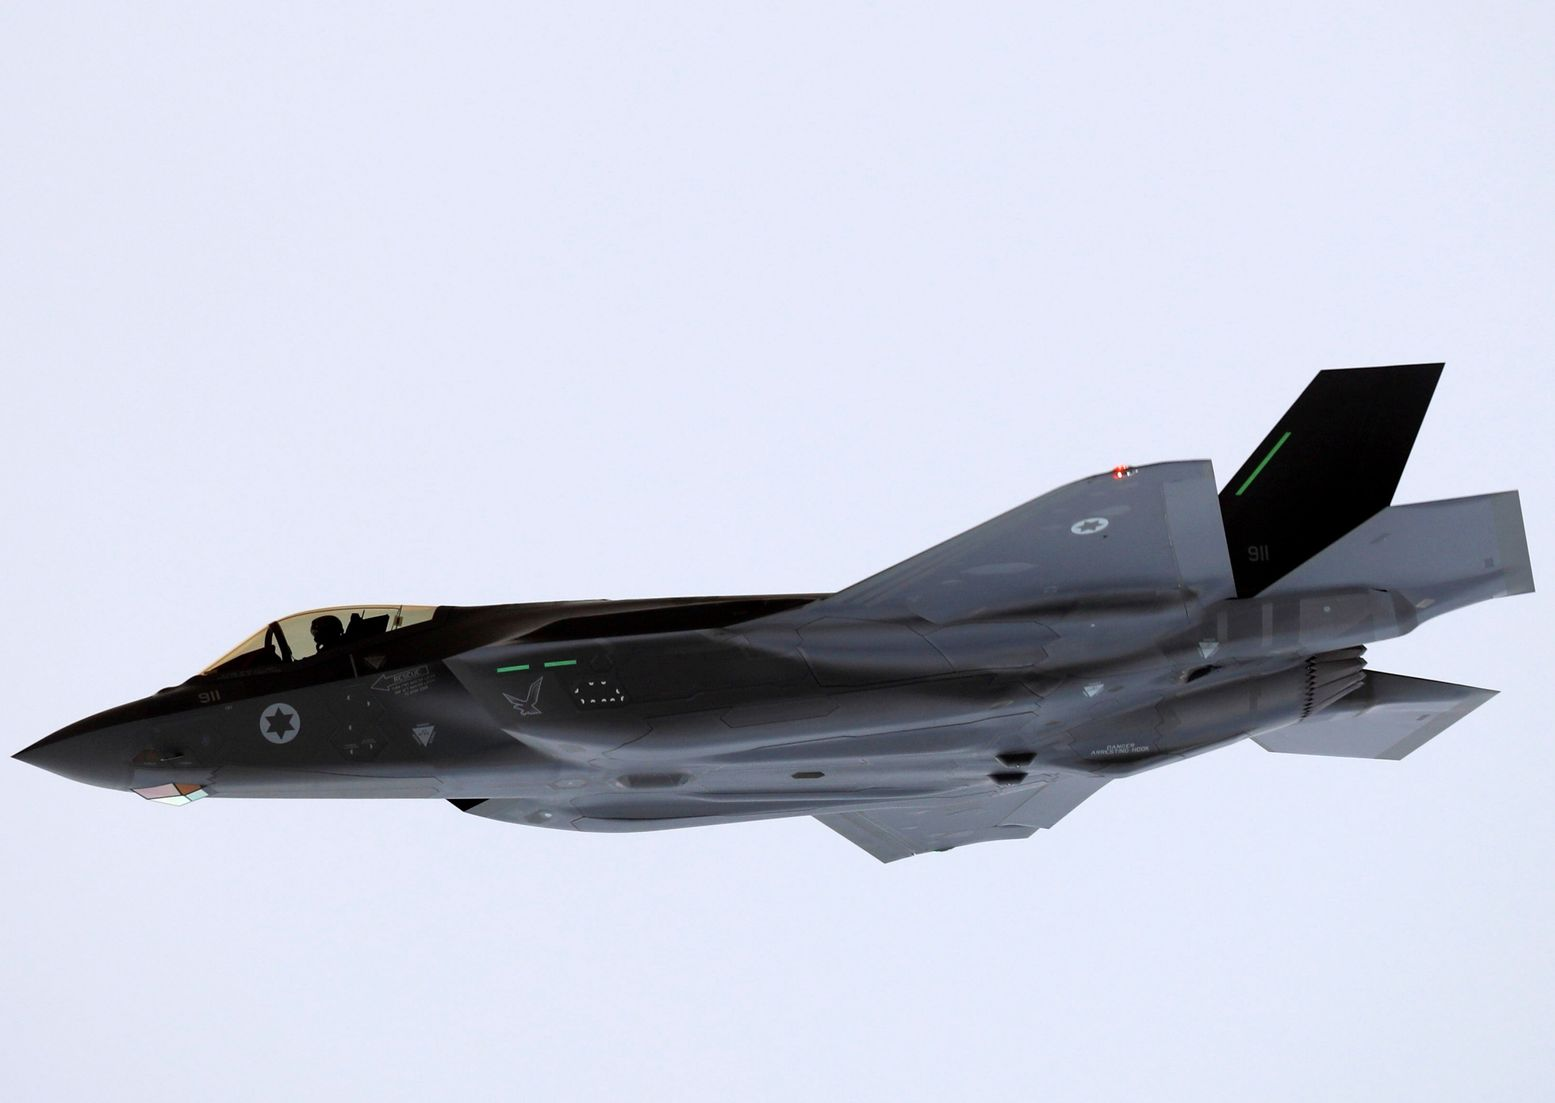 Israel 'Modified' Their F-35 Stealth Fighters. The Results Speak for